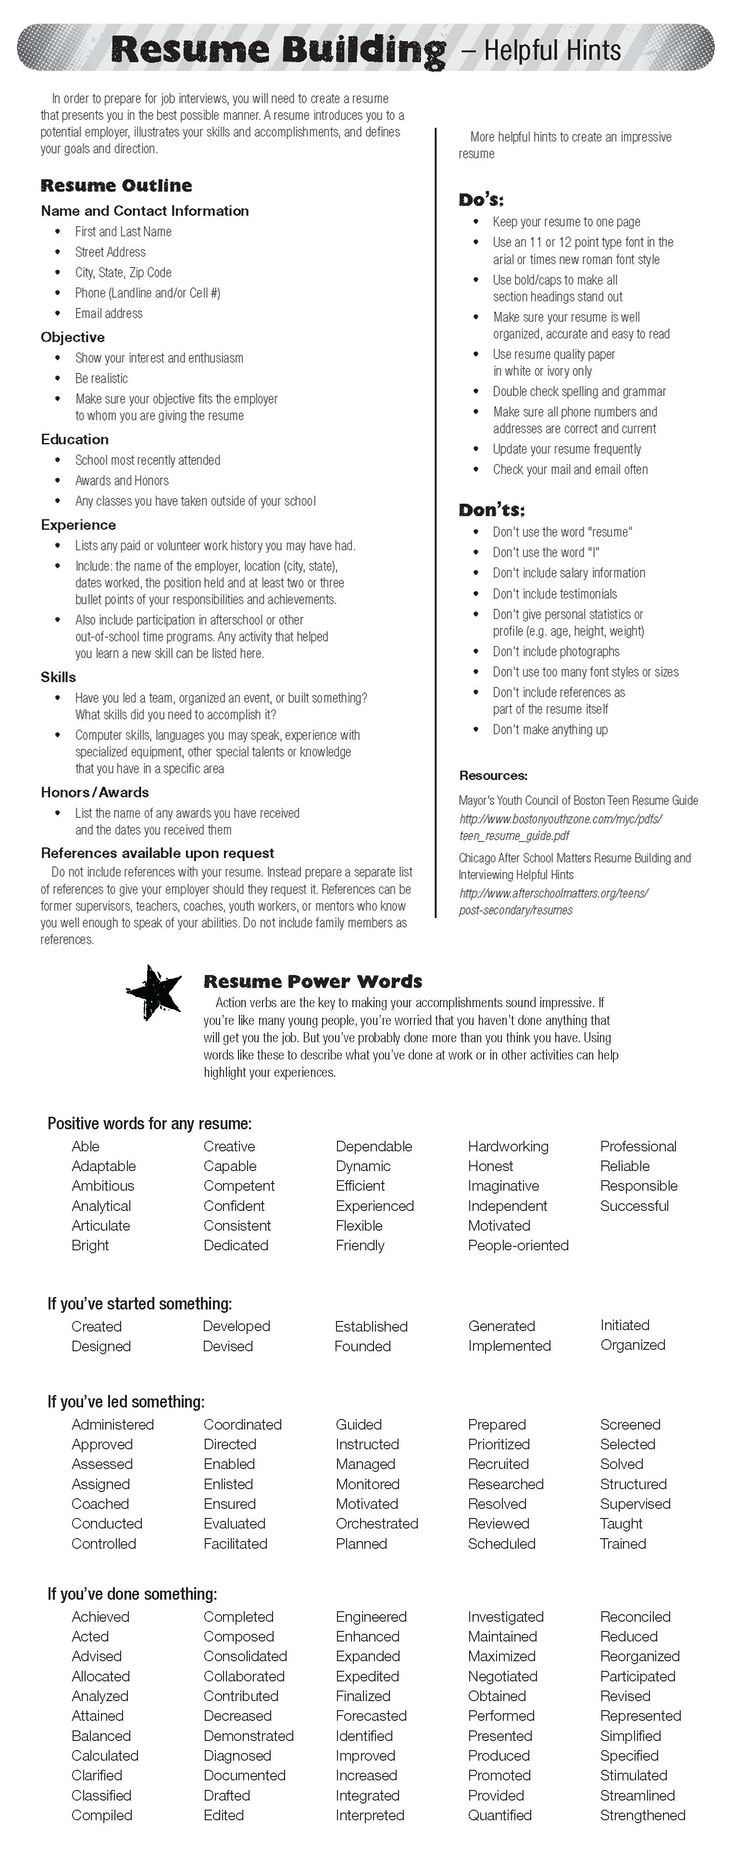 Opposenewapstandardsus  Nice  Ideas About Resume On Pinterest  Cv Format Resume Cv And  With Great  Ideas About Resume On Pinterest  Cv Format Resume Cv And Resume Templates With Astonishing Skills For Resume Examples Also Resume Samples  In Addition Resume Letter And Social Media Resume As Well As Objectives On A Resume Additionally Template Resume From Pinterestcom With Opposenewapstandardsus  Great  Ideas About Resume On Pinterest  Cv Format Resume Cv And  With Astonishing  Ideas About Resume On Pinterest  Cv Format Resume Cv And Resume Templates And Nice Skills For Resume Examples Also Resume Samples  In Addition Resume Letter From Pinterestcom